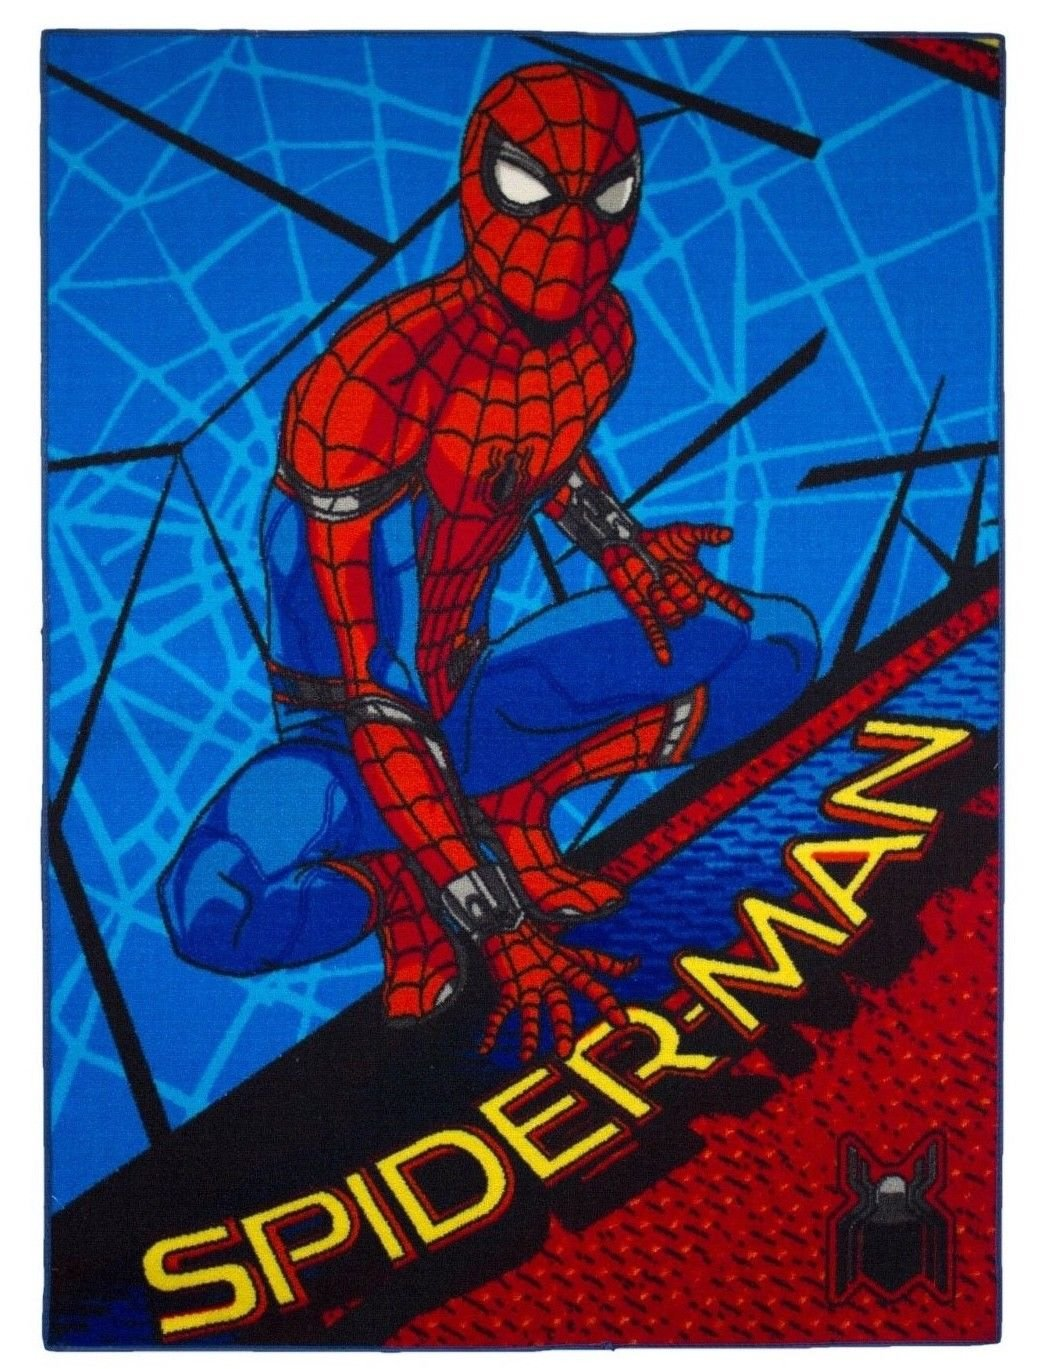 ASSOCIATED WEAVERS RSDMAGA02095133T06 Spider-Man Children's Rug Associated Weavers Europe NV